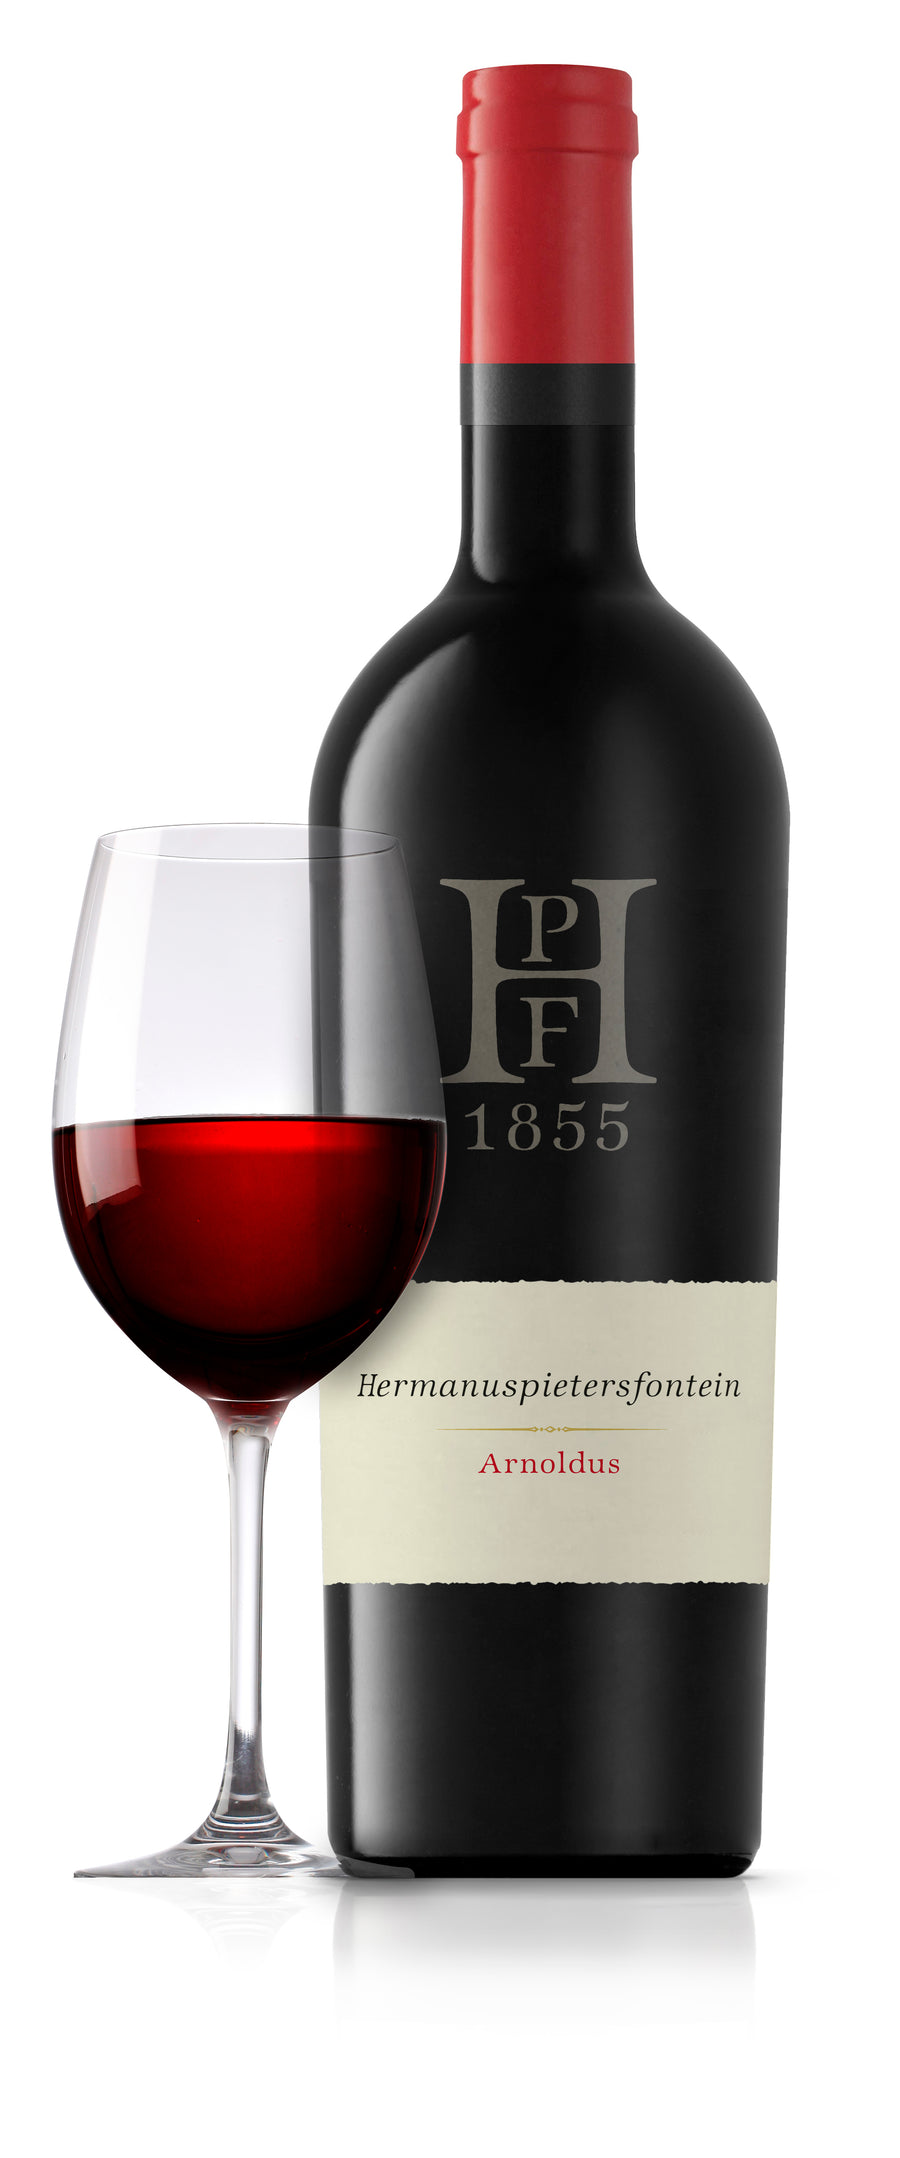 Arnoldus (Bordeaux-blend) - Hermanuspietersfontein Wines